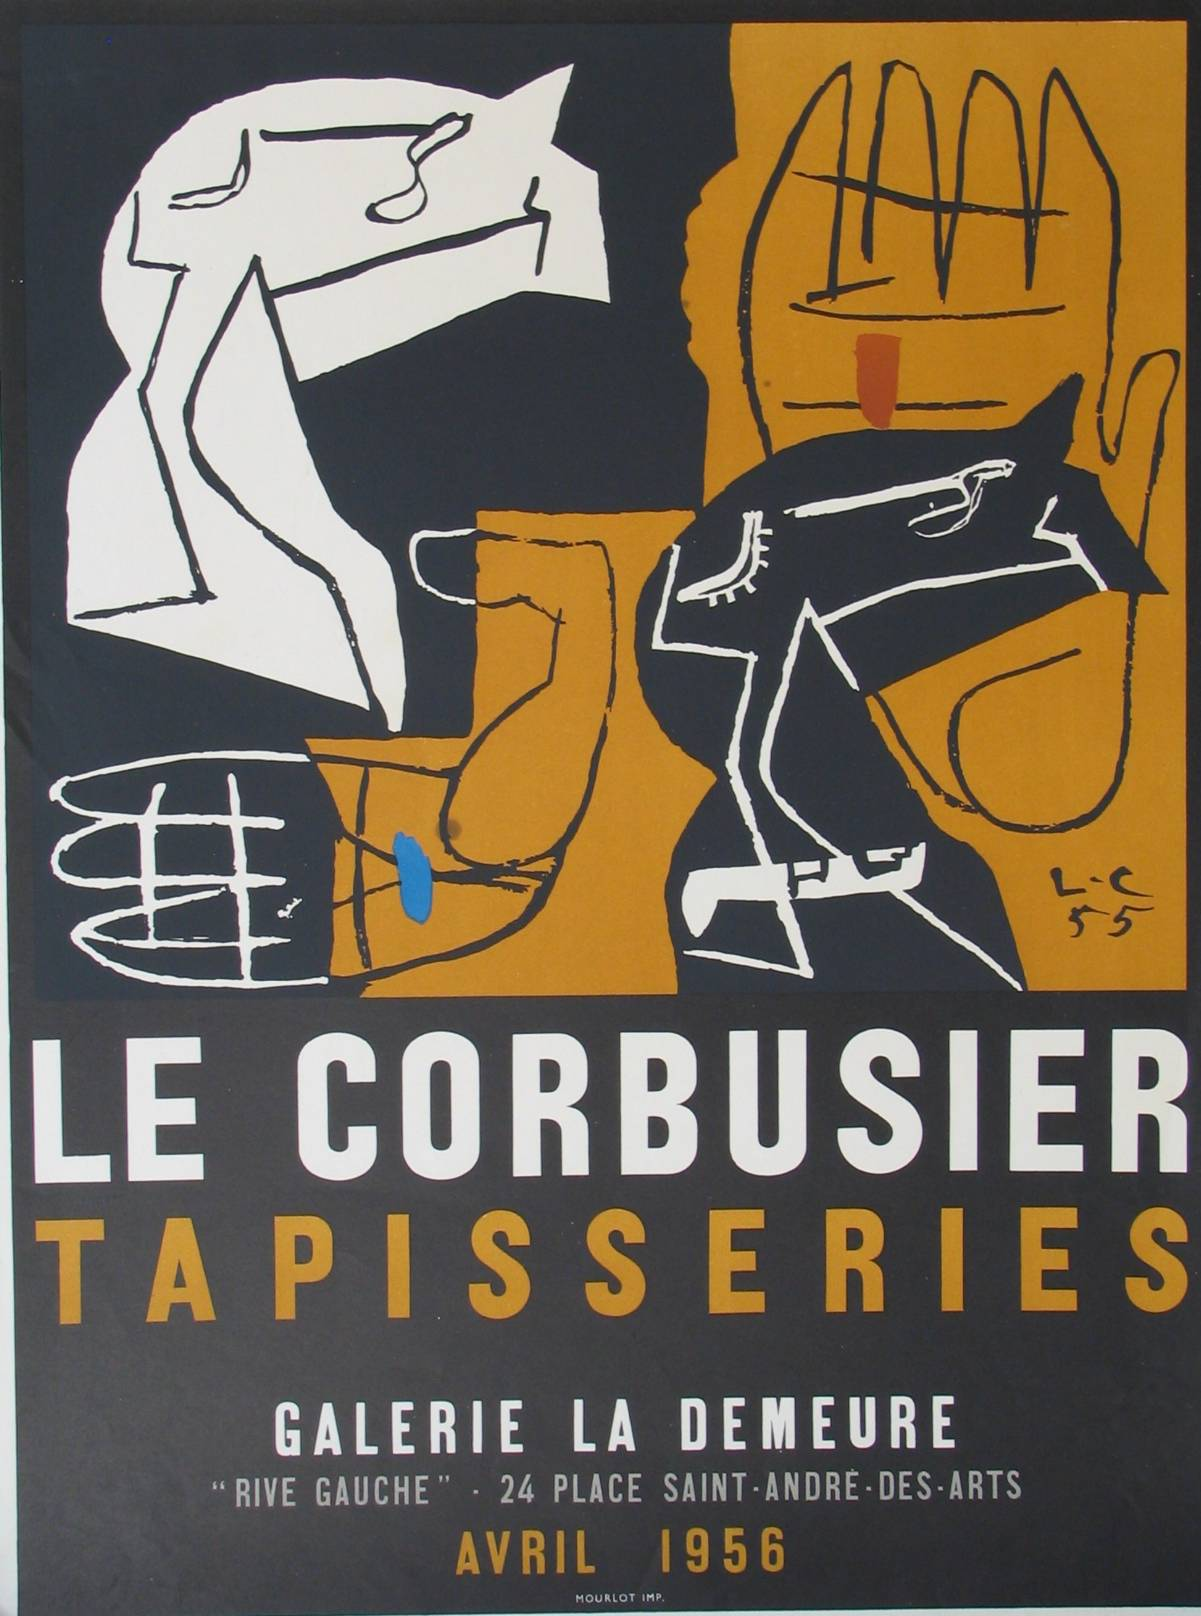 Corbusier tapisseries